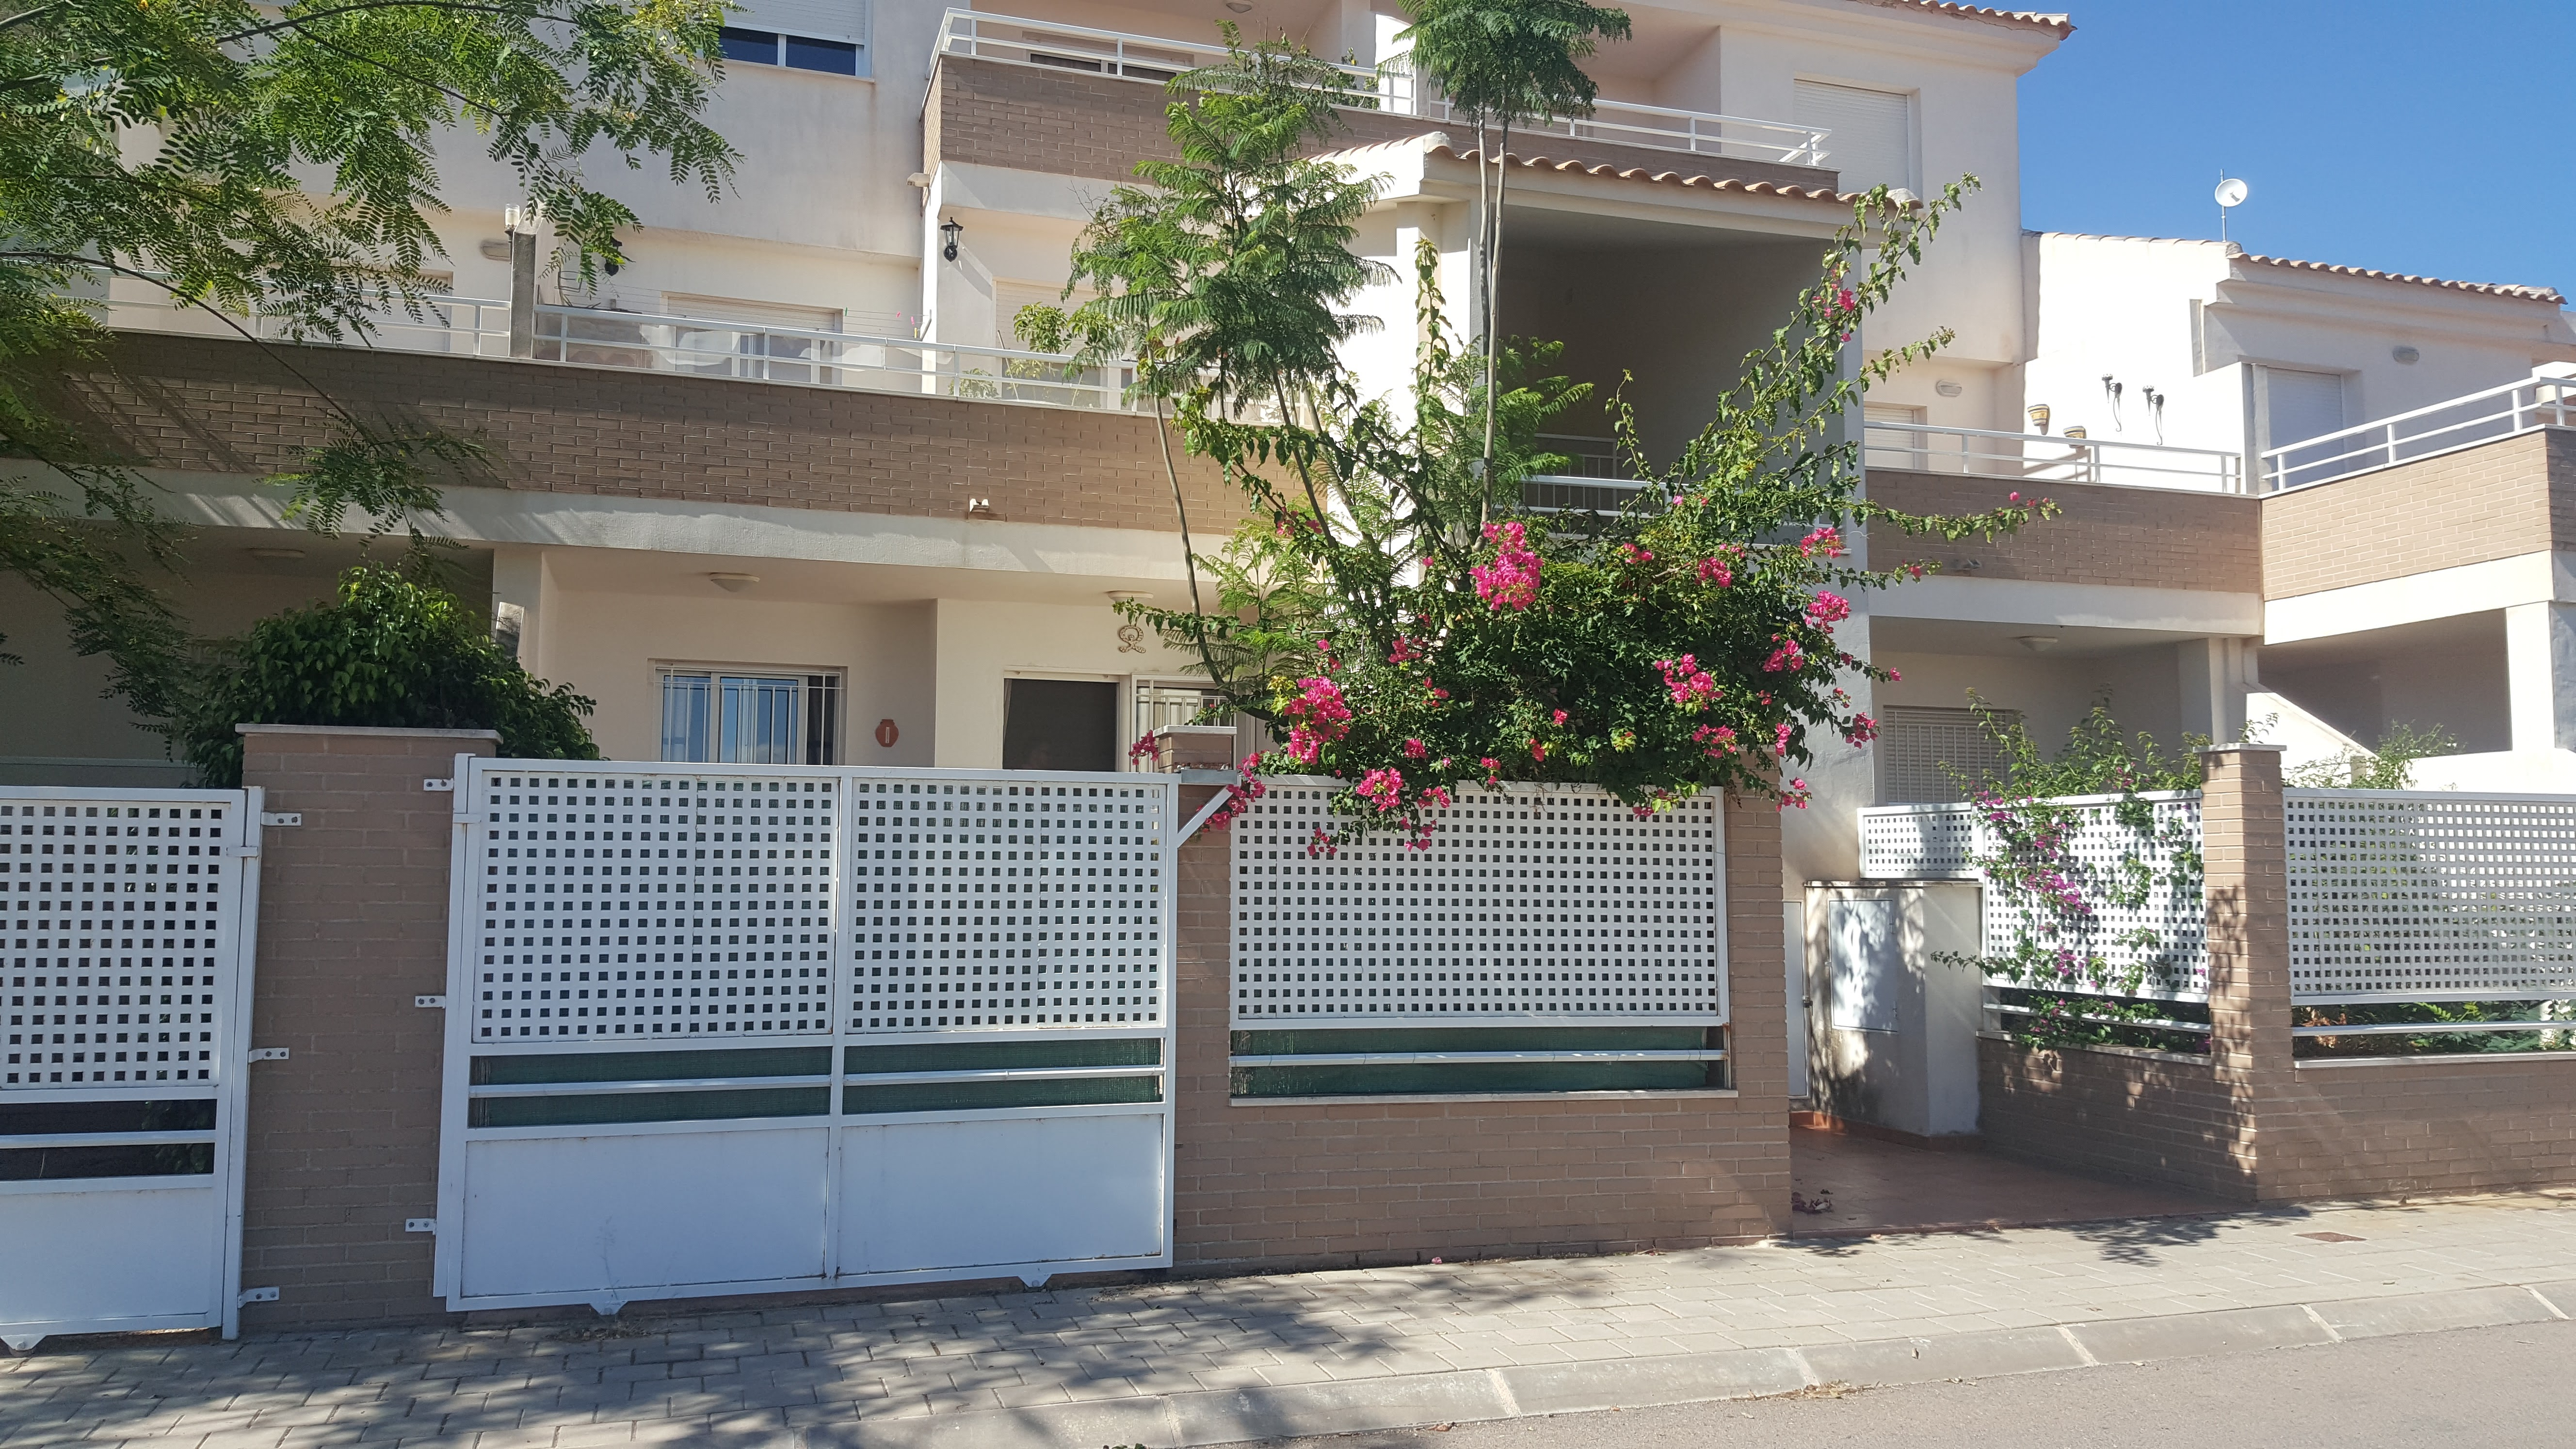 2 Bedrooms - Apartment - Murcia - For Sale